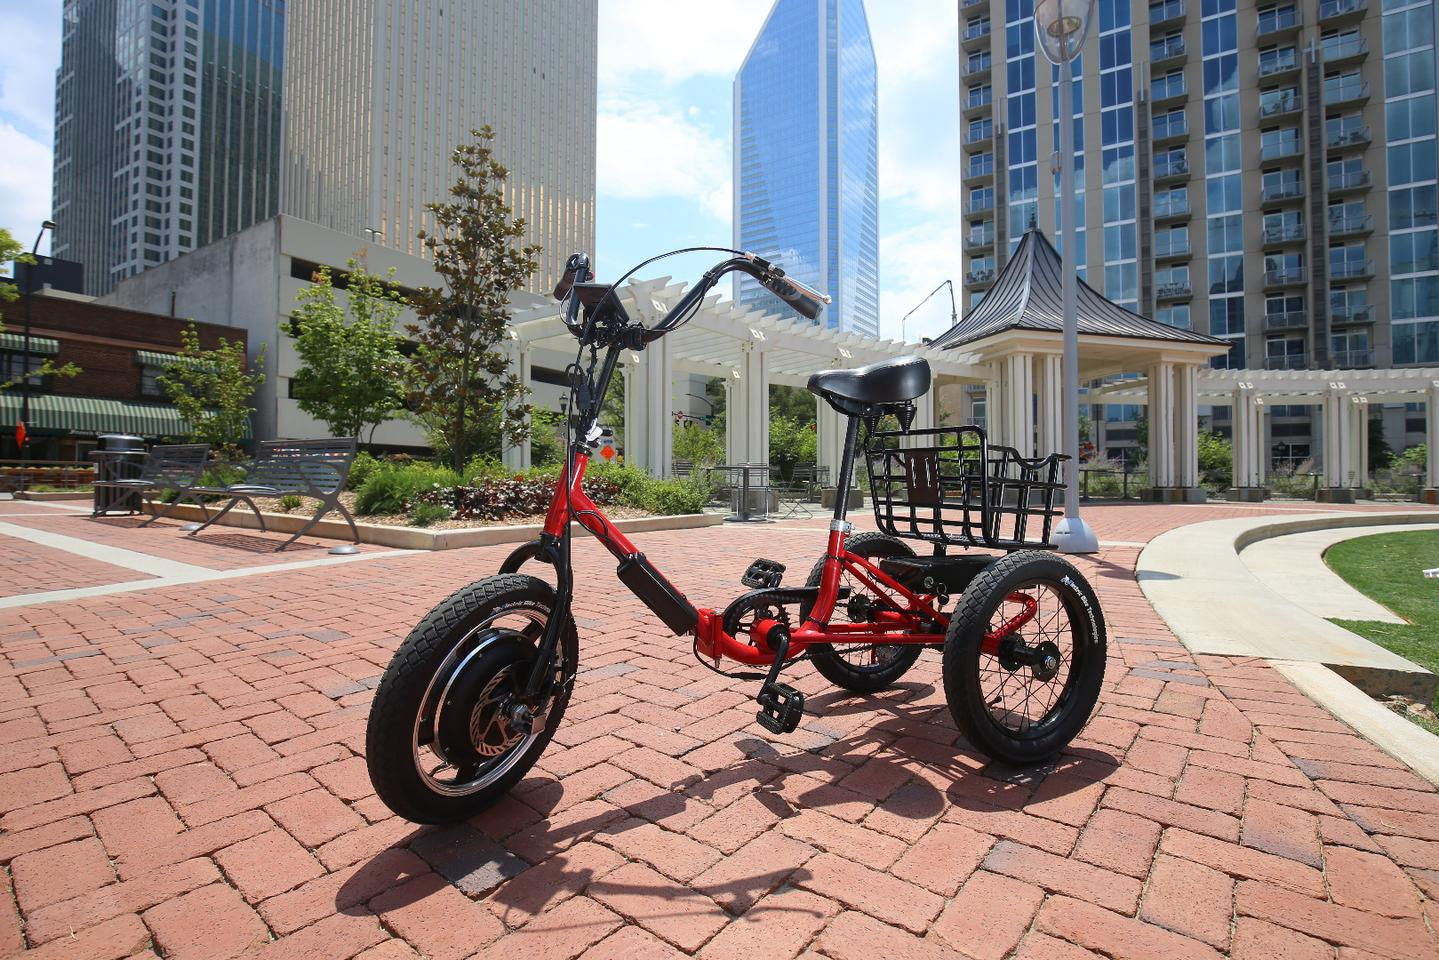 The Liberty Trike features a 750-watt front hub motor powered by a removable 36-volt/10-Ah lithium iron phosphate battery pack